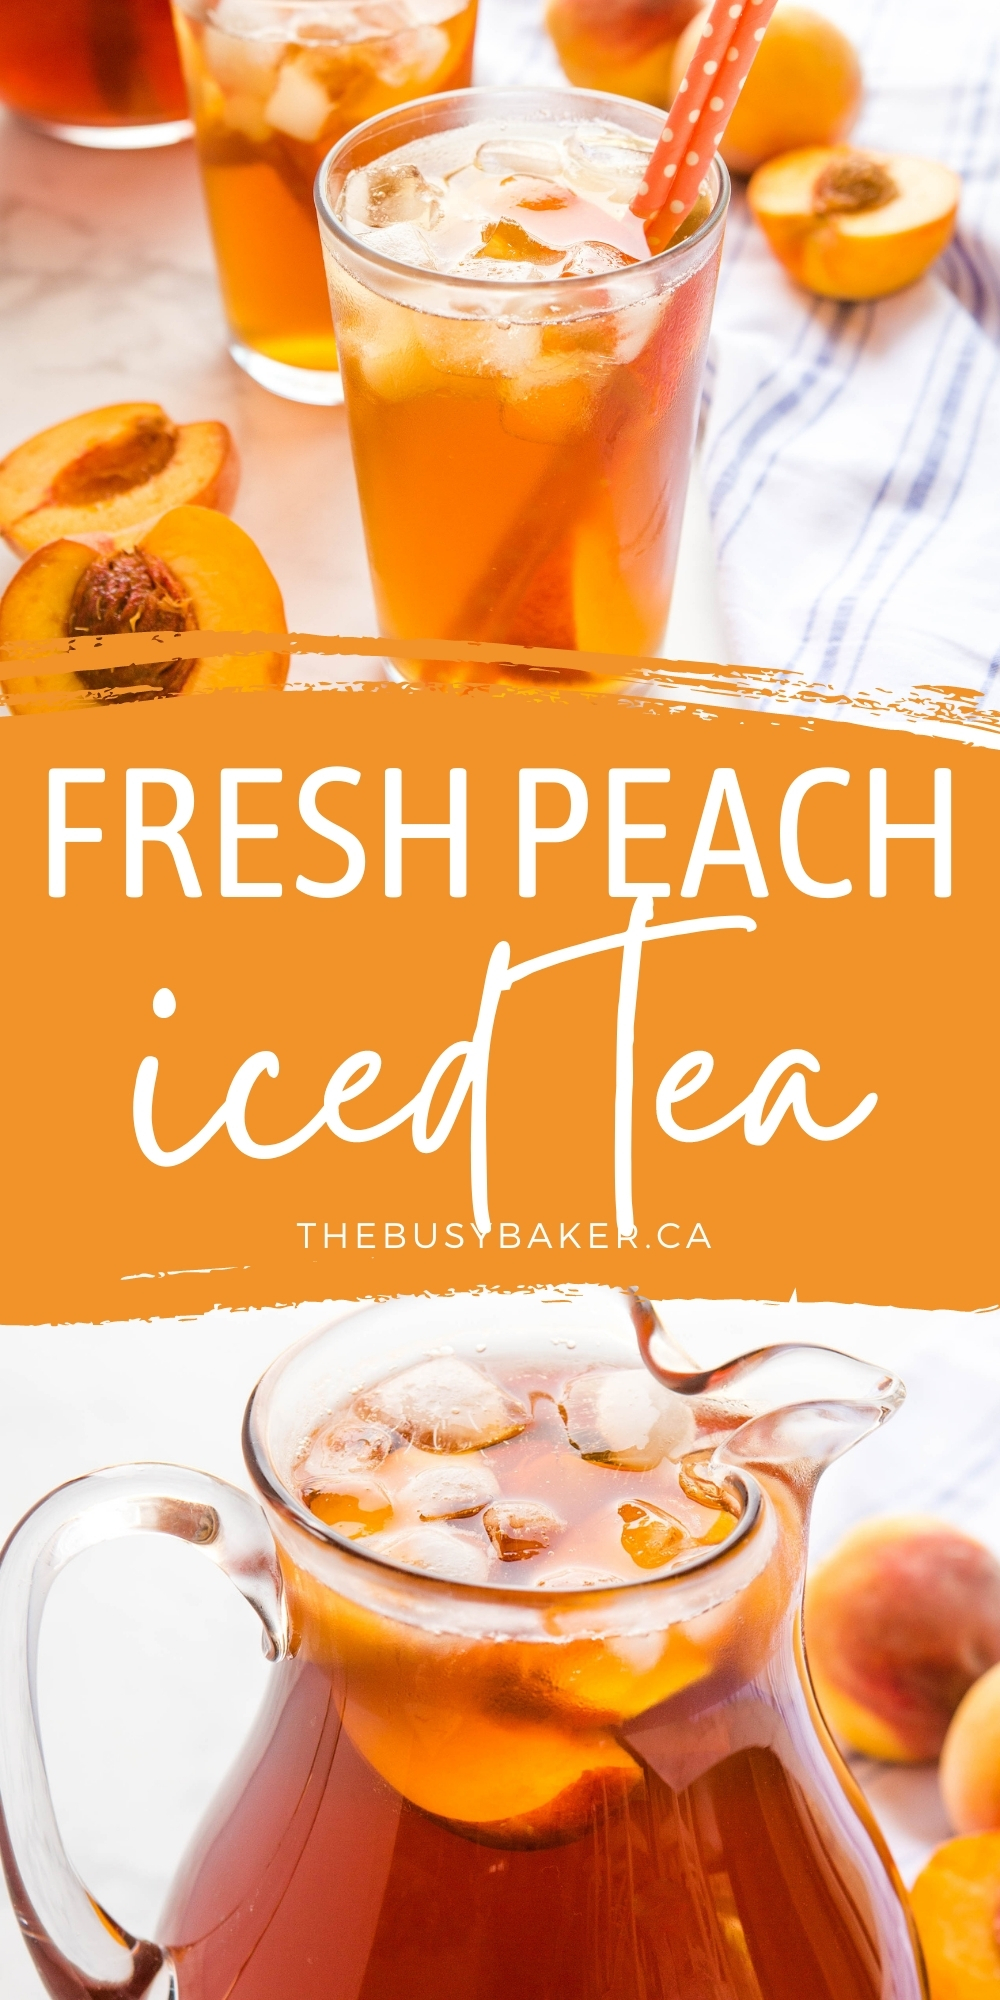 This Peach Tea is a refreshing sweet summer drink made with black tea, fresh peaches and an easy homemade sugar syrup! Simple to make and perfect for summer! Recipe from thebusybaker.ca! #peachtea #icedtea #summer #drink #homemade #blacktea via @busybakerblog